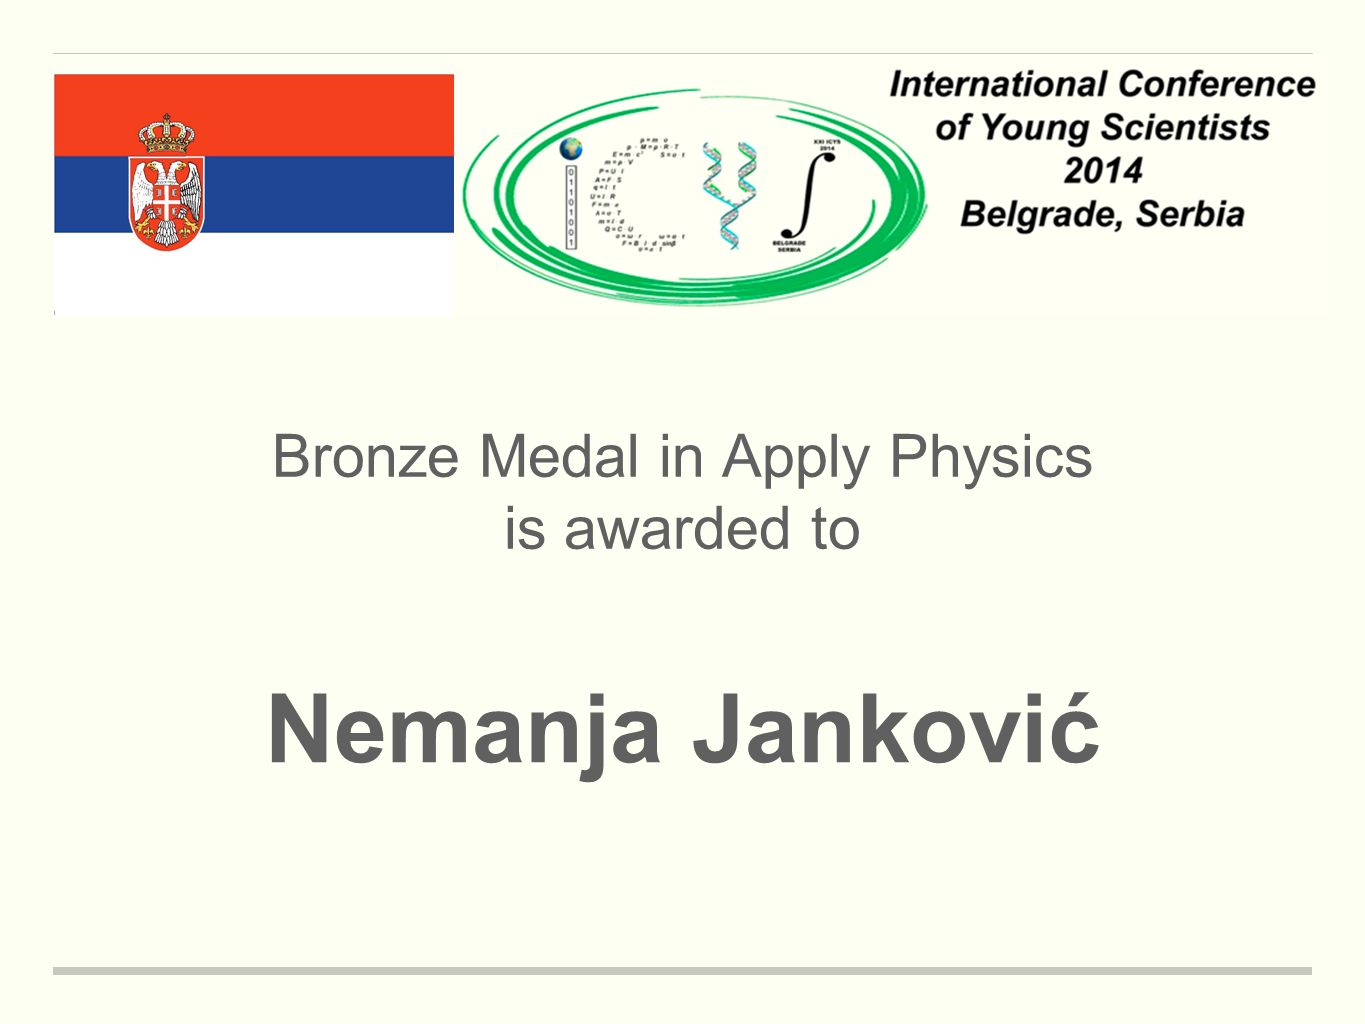 Bronze Medal in Apply Physics is awarded to Nemanja Janković